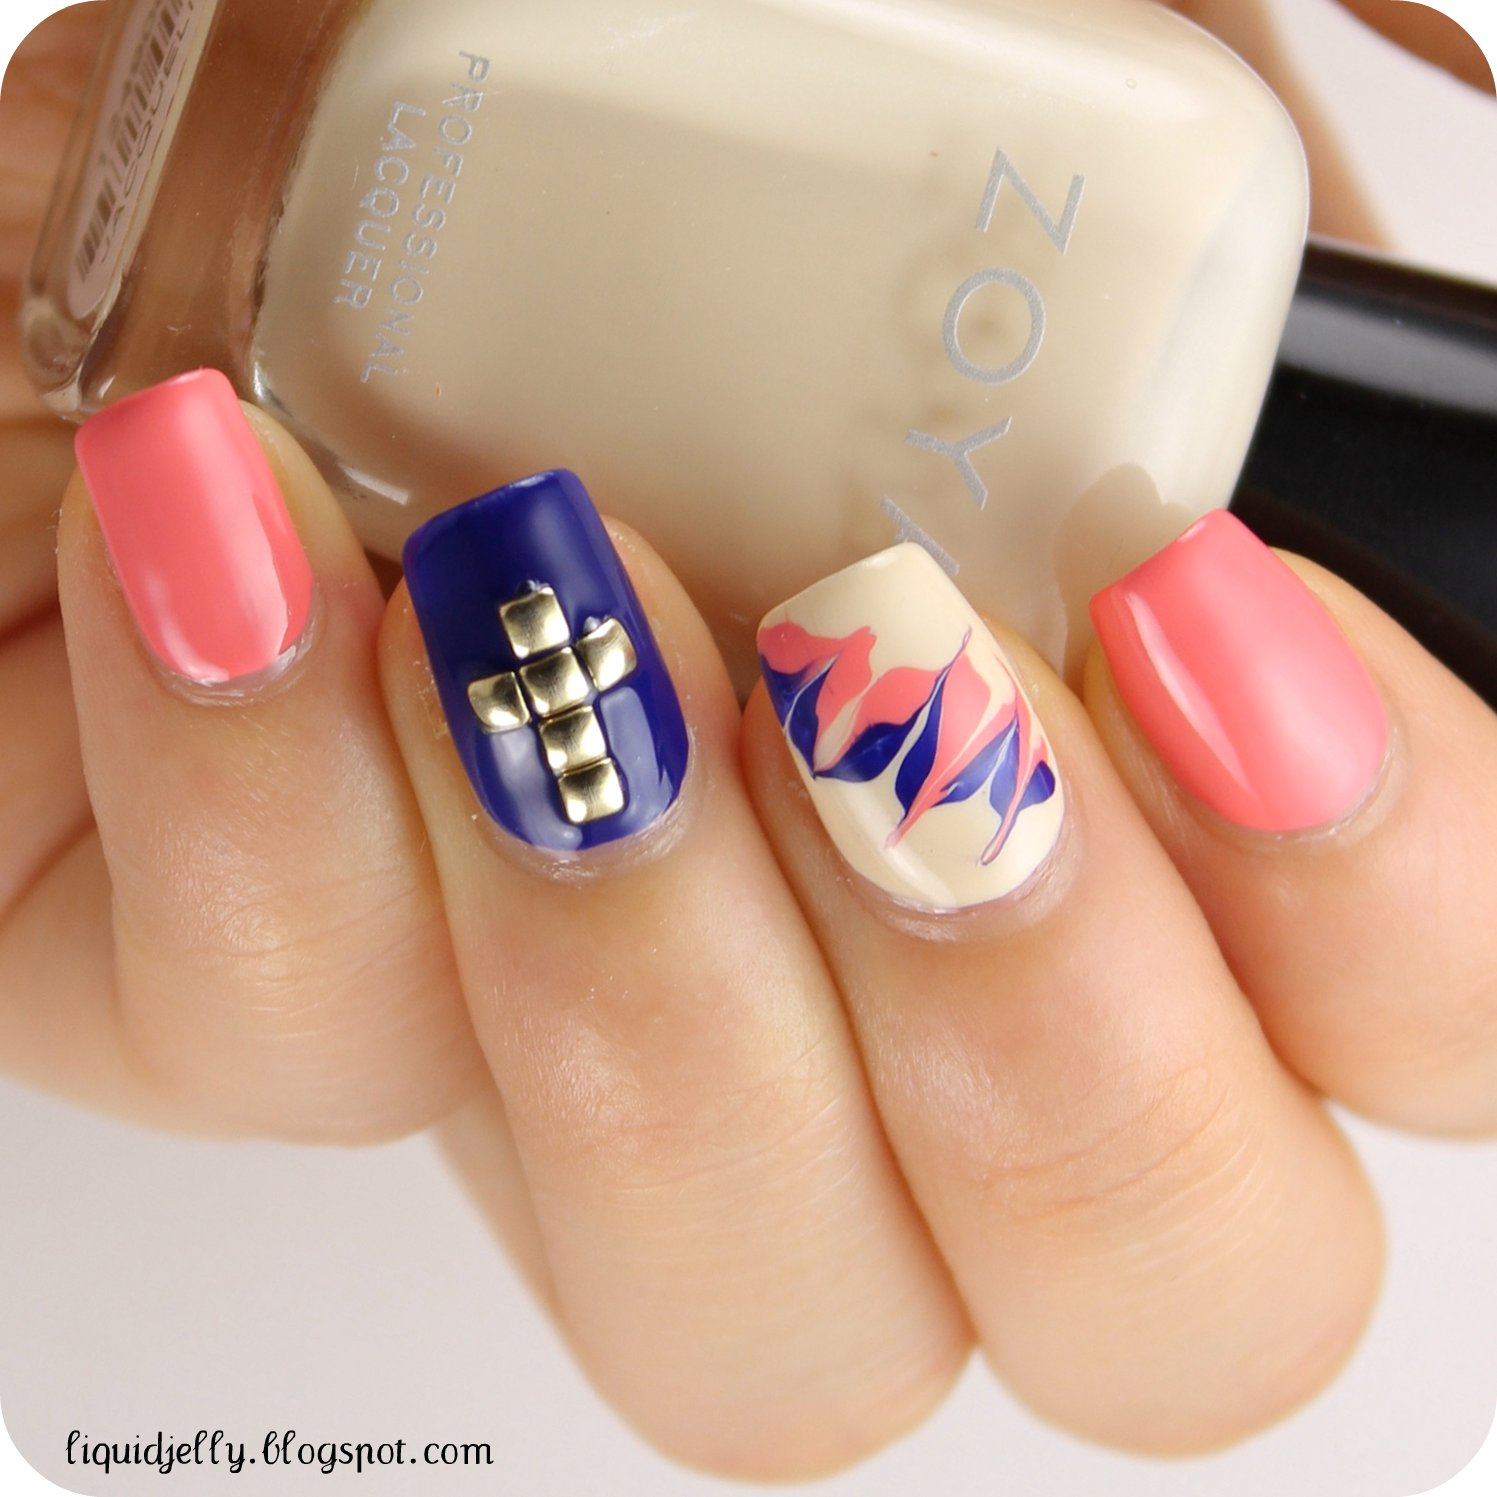 Liquid Jelly: Studded Cross Nail Art